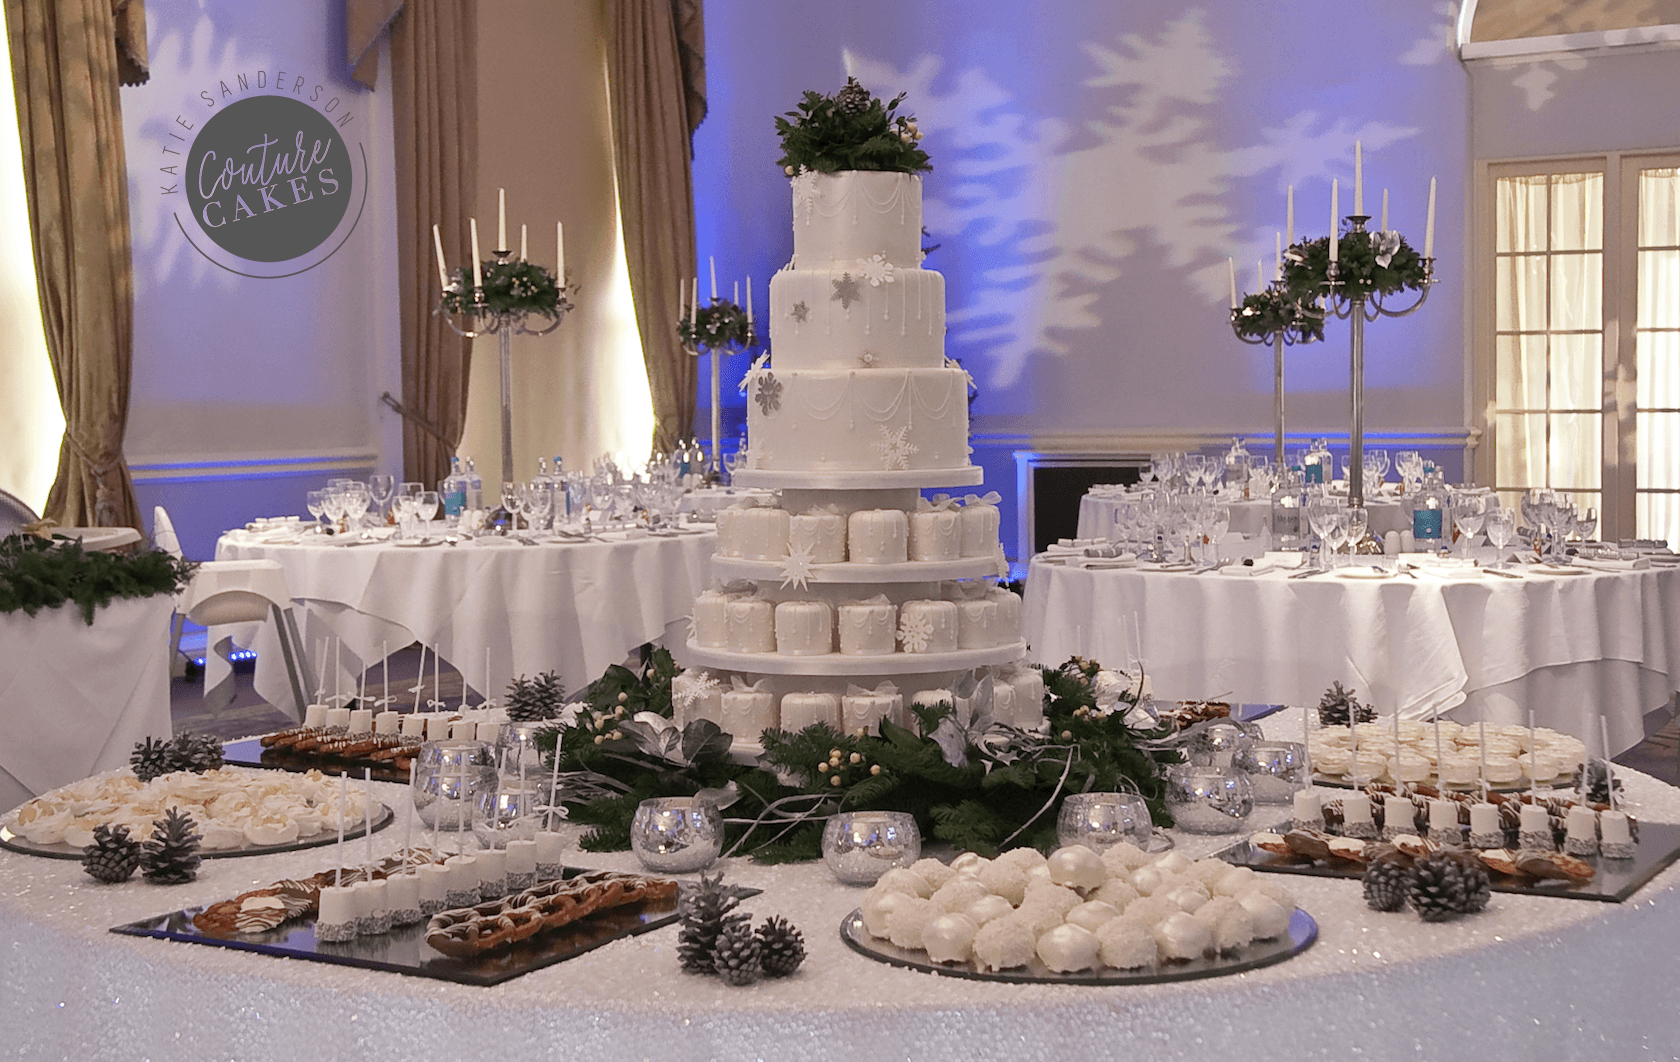 Wedding Cake Table.Dessert Table Wedding Cakes For East Anglia